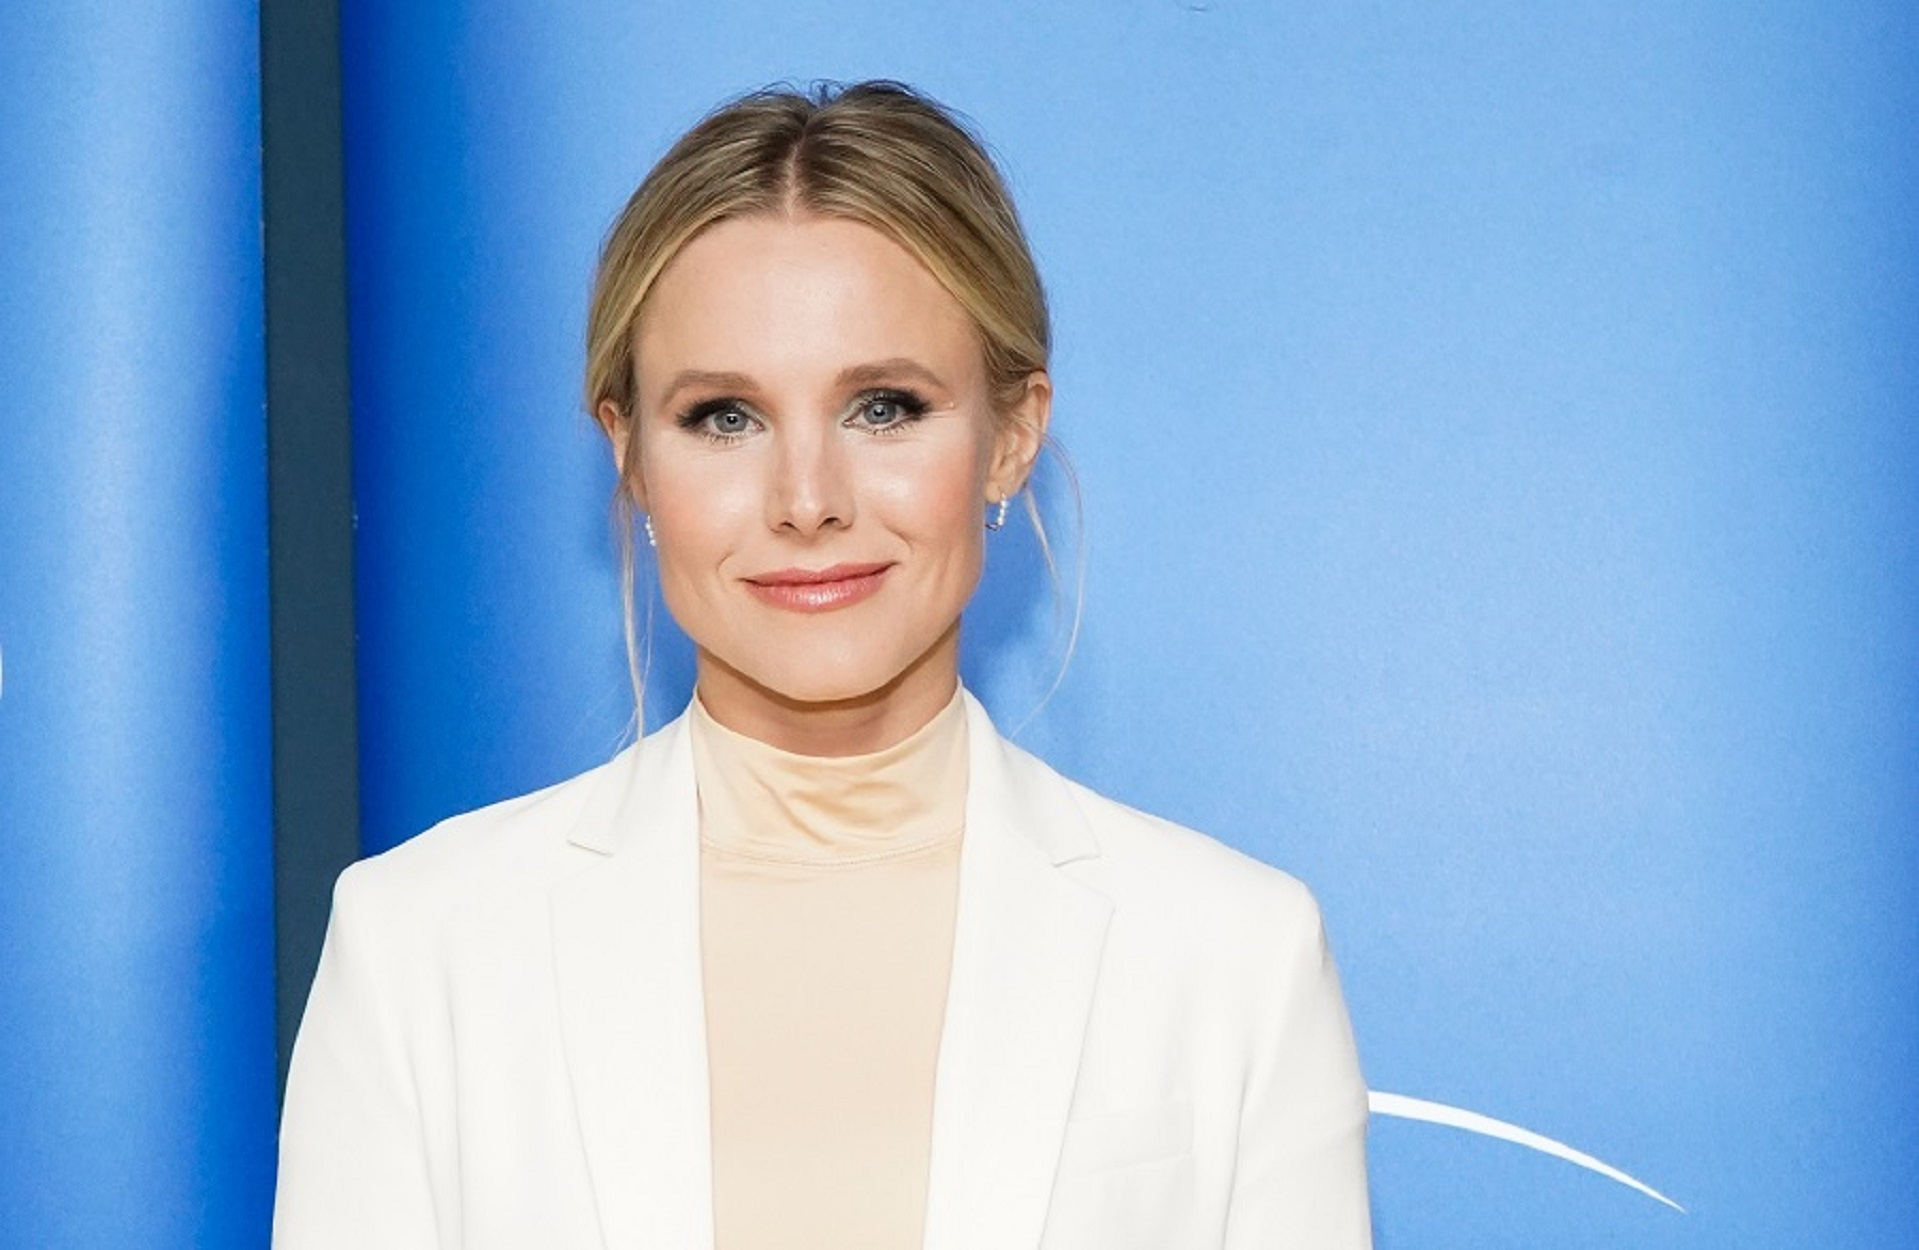 Kristen Bell with blue background